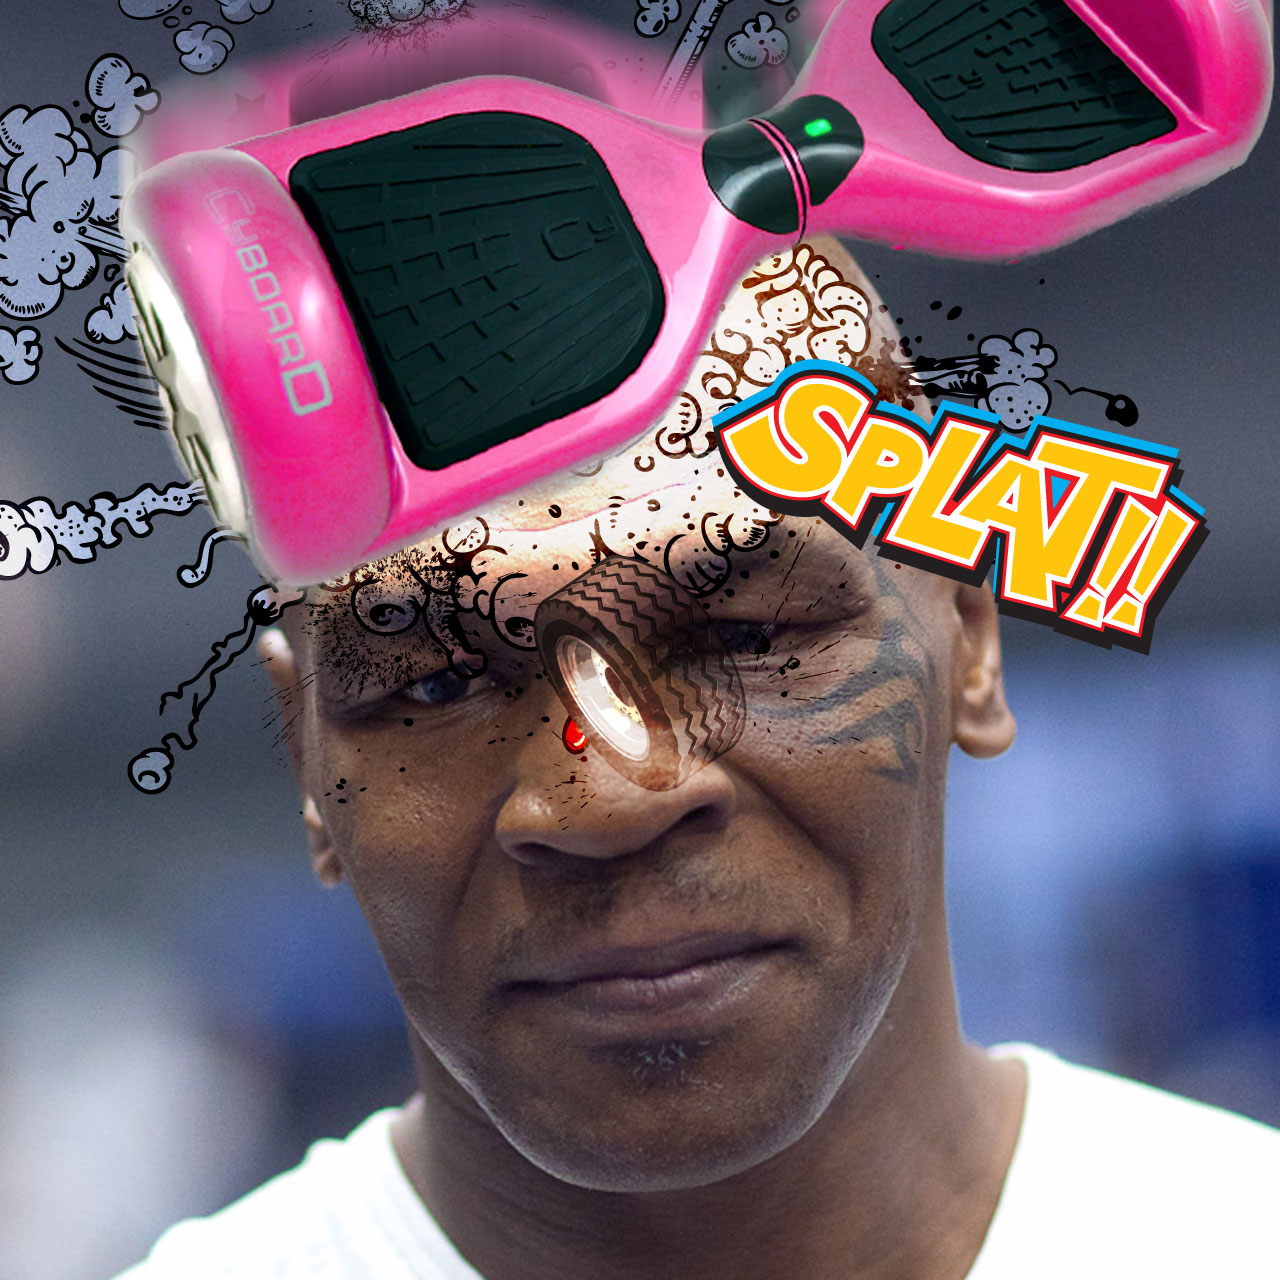 Mike Tyson gets knocked out by CyBoard